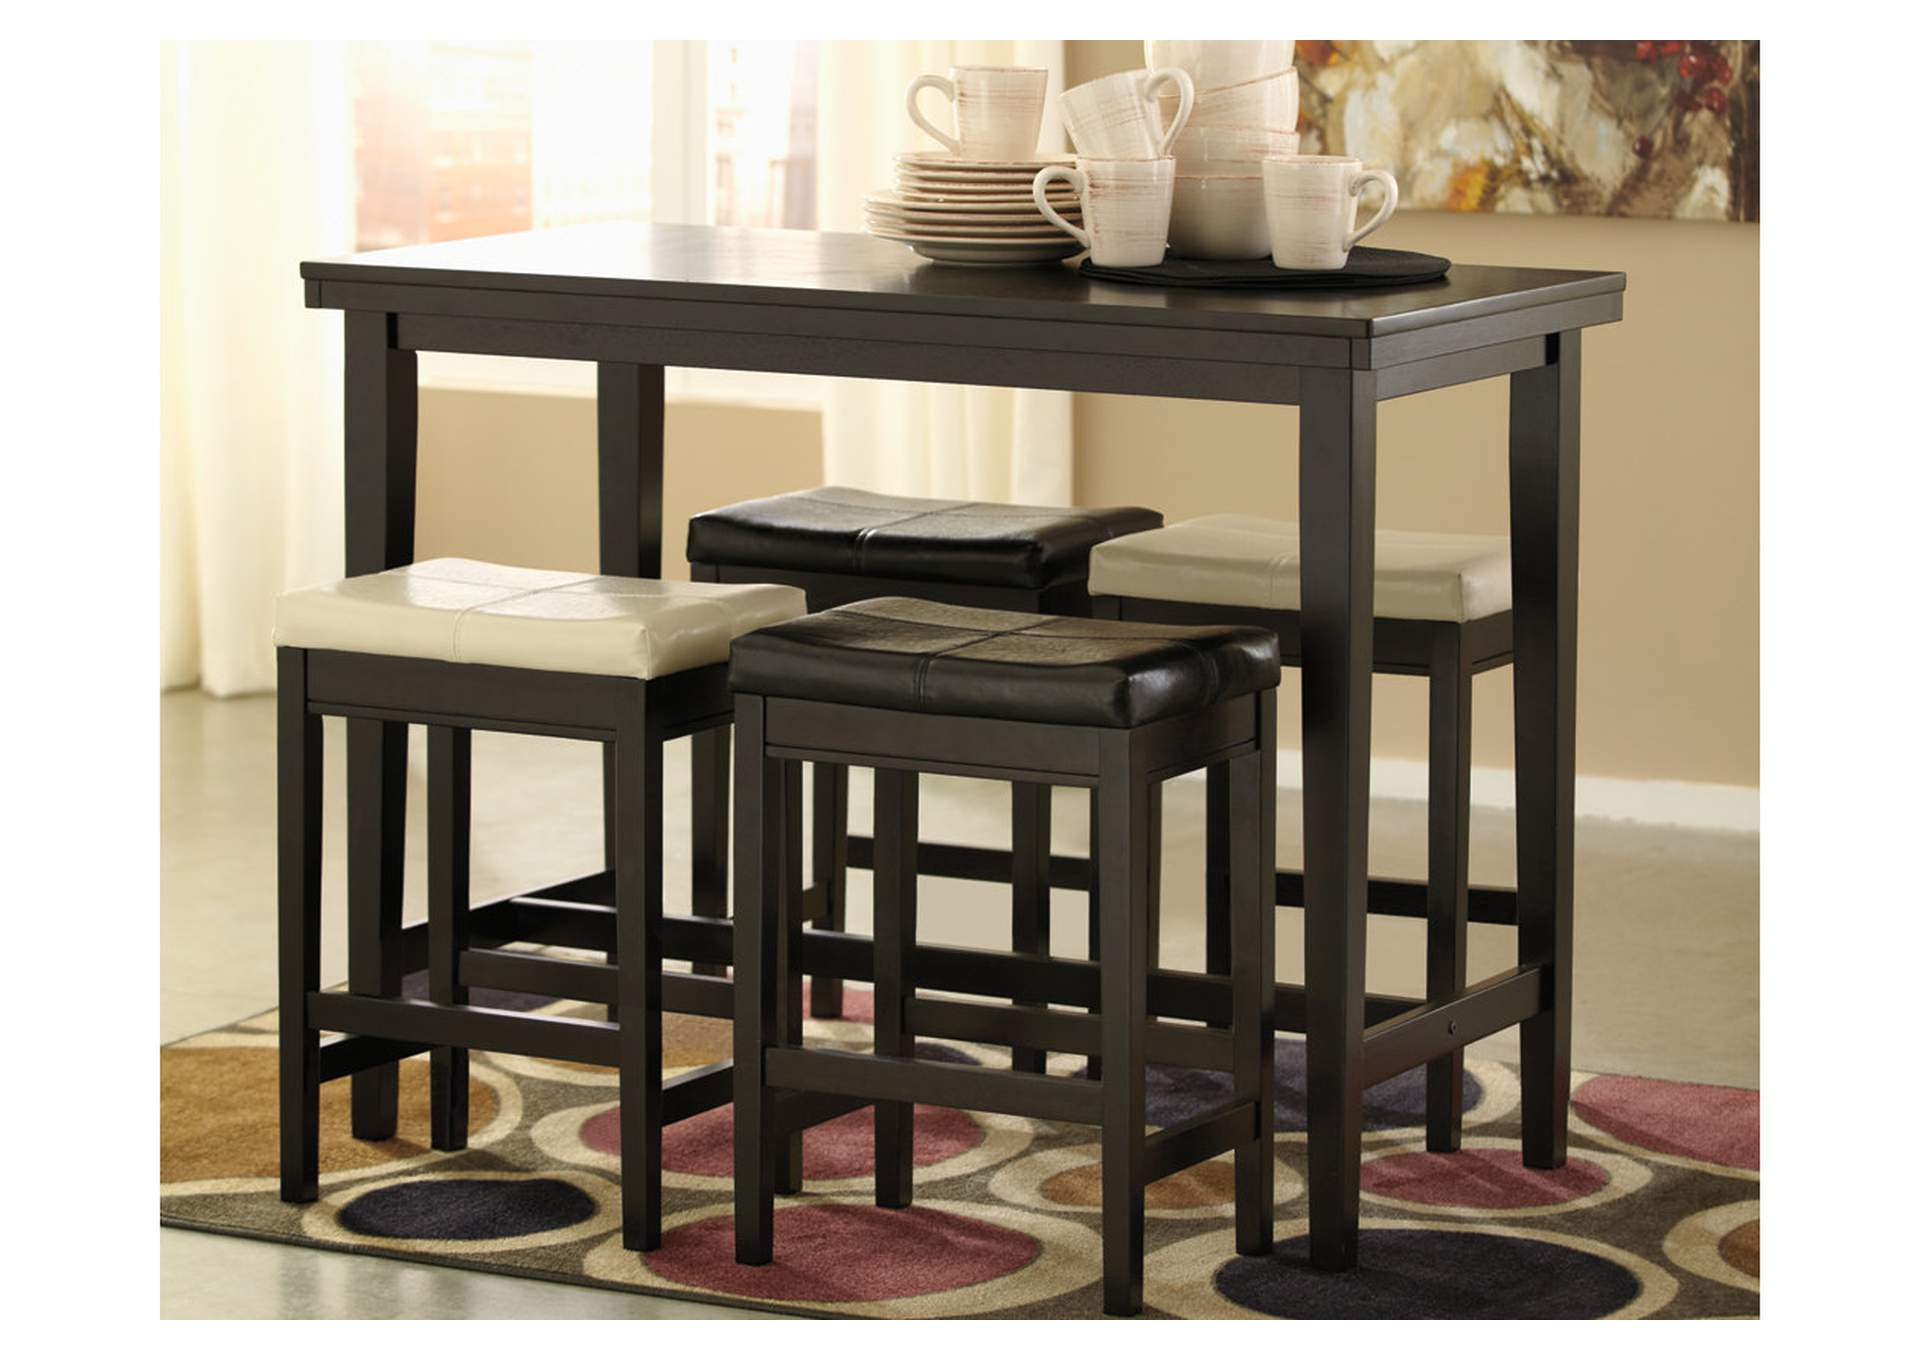 Kimonte Rectangular Counter Height Table,Signature Design By Ashley